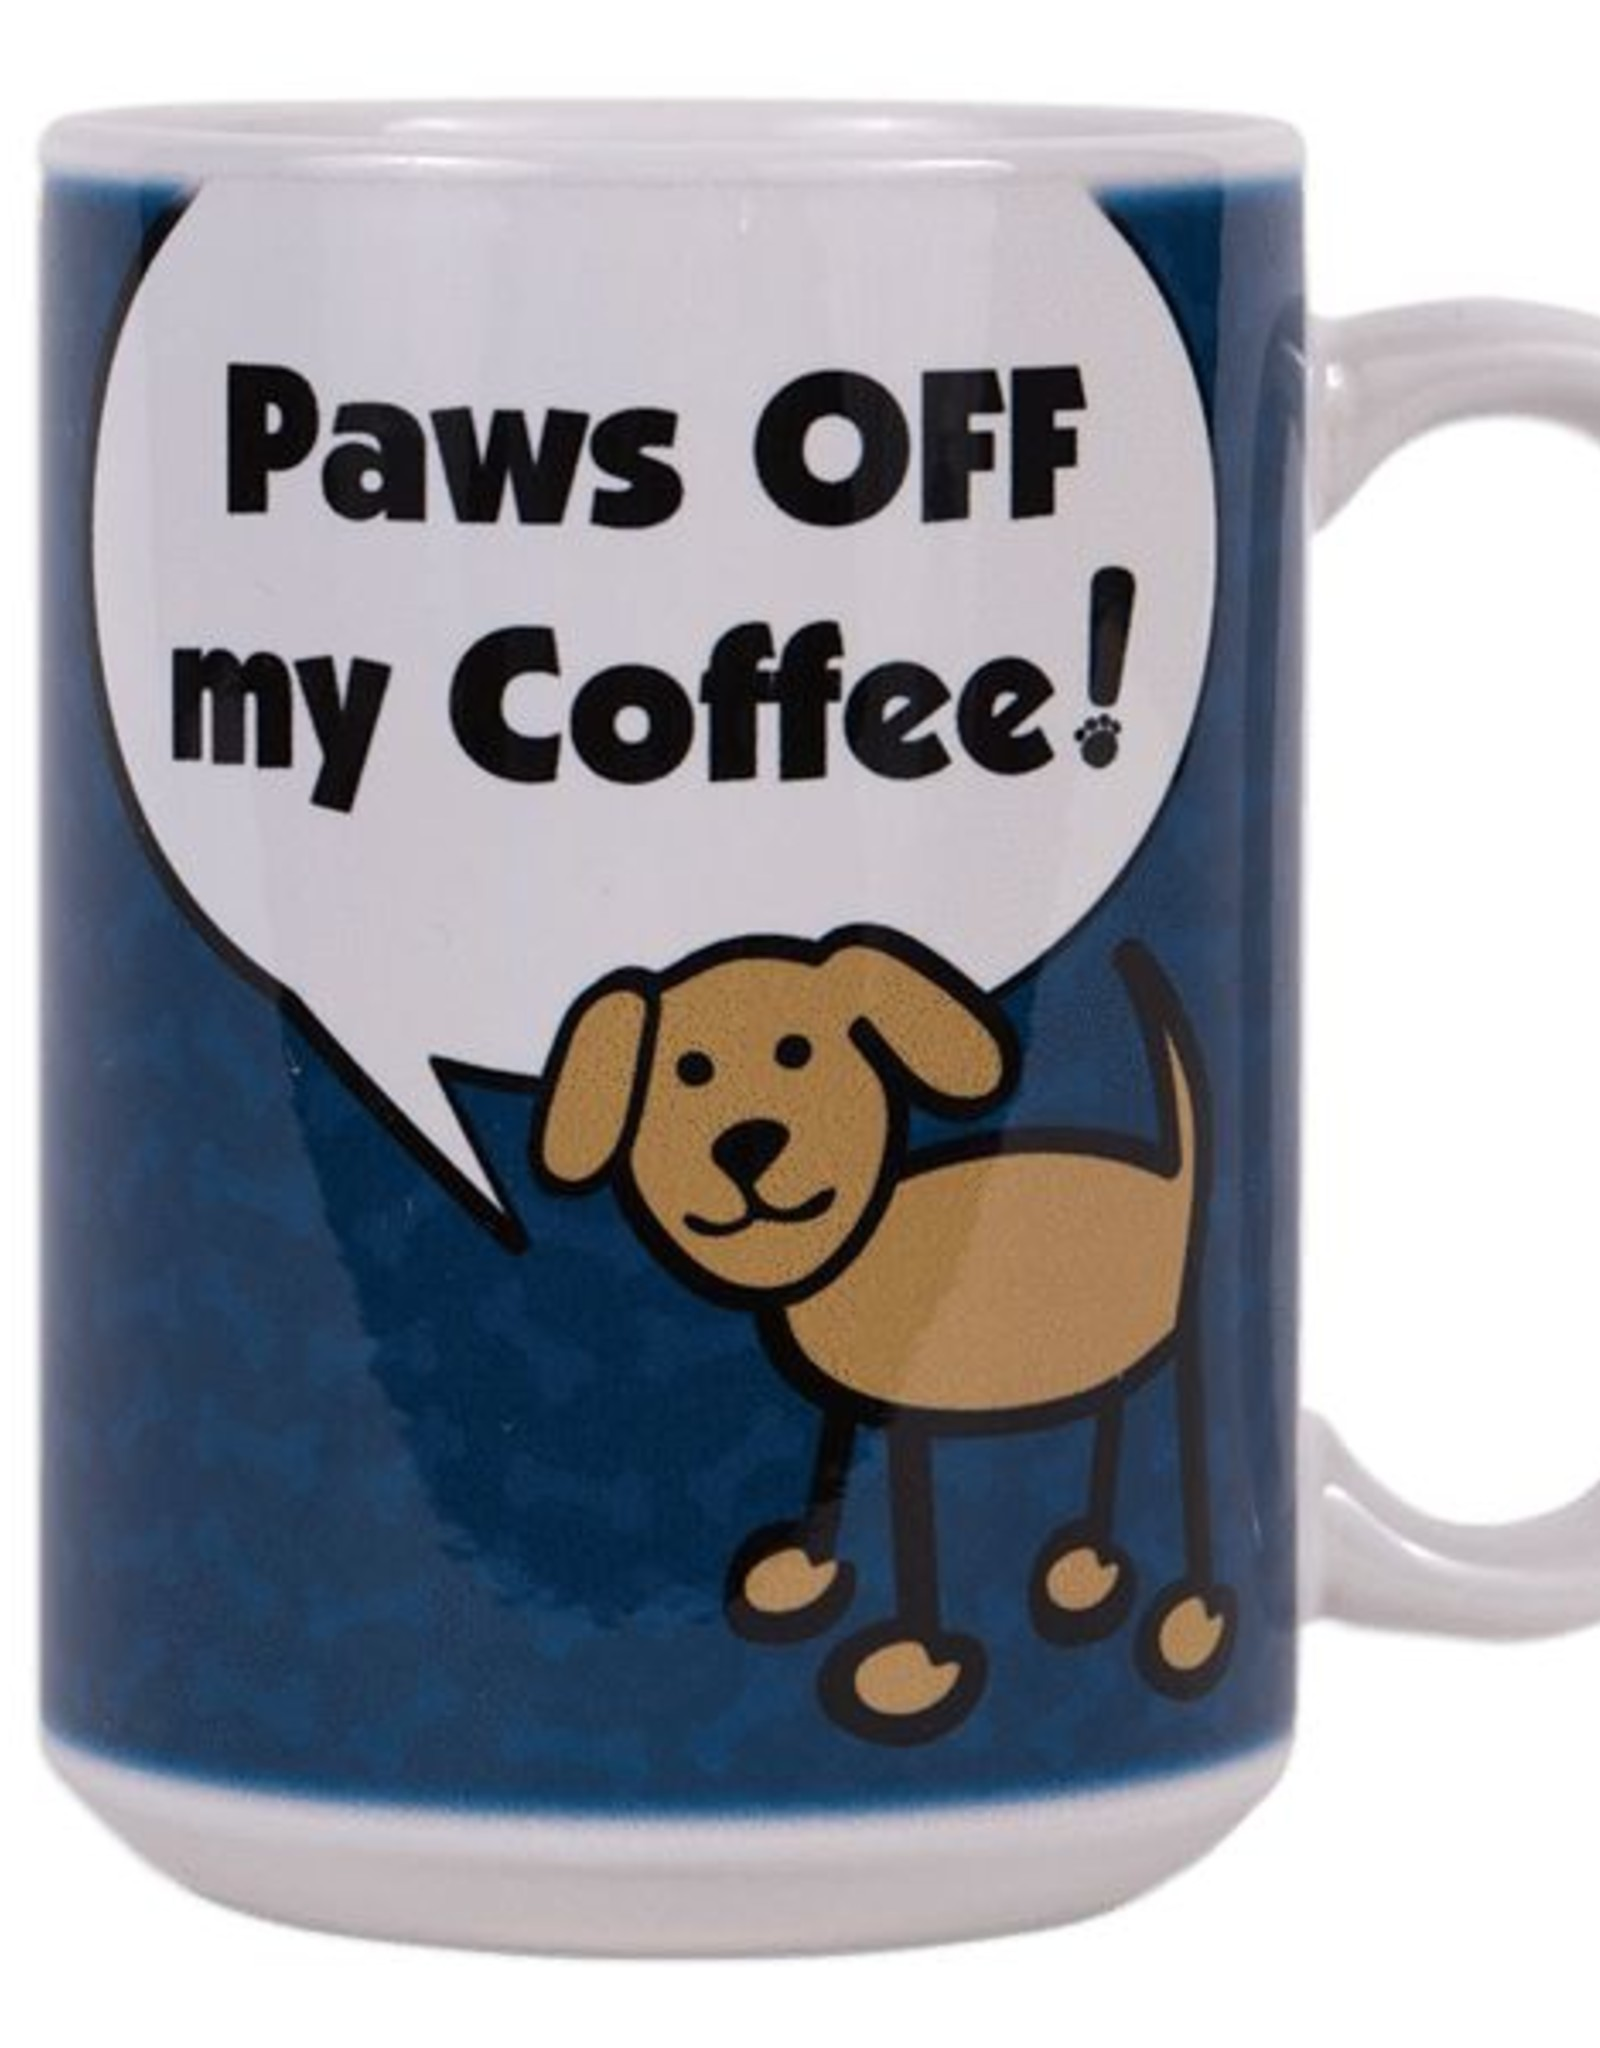 Dog Speak Big Coffee Mug 15oz Paws Off My Coffee Molly S Healthy Pet Food Market